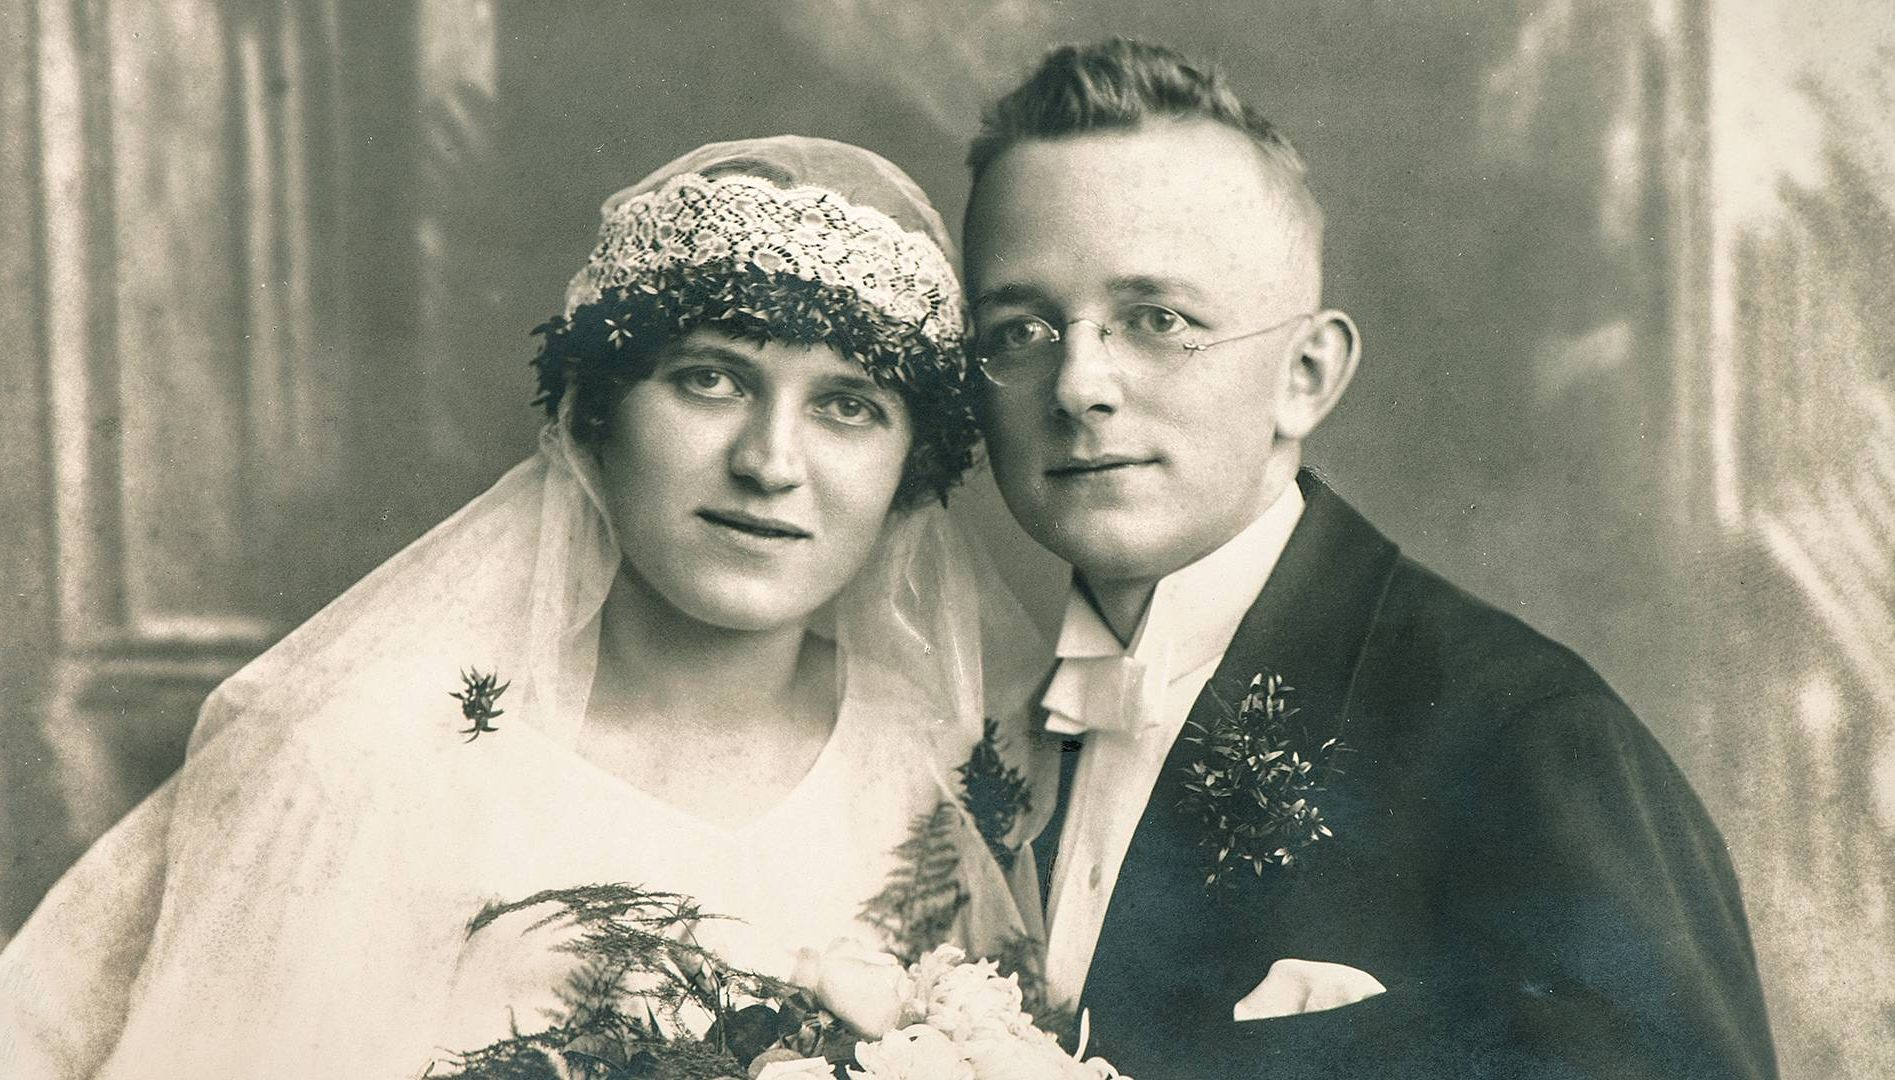 a vintage photo of a just married couple. rewire pbs love weddings covid